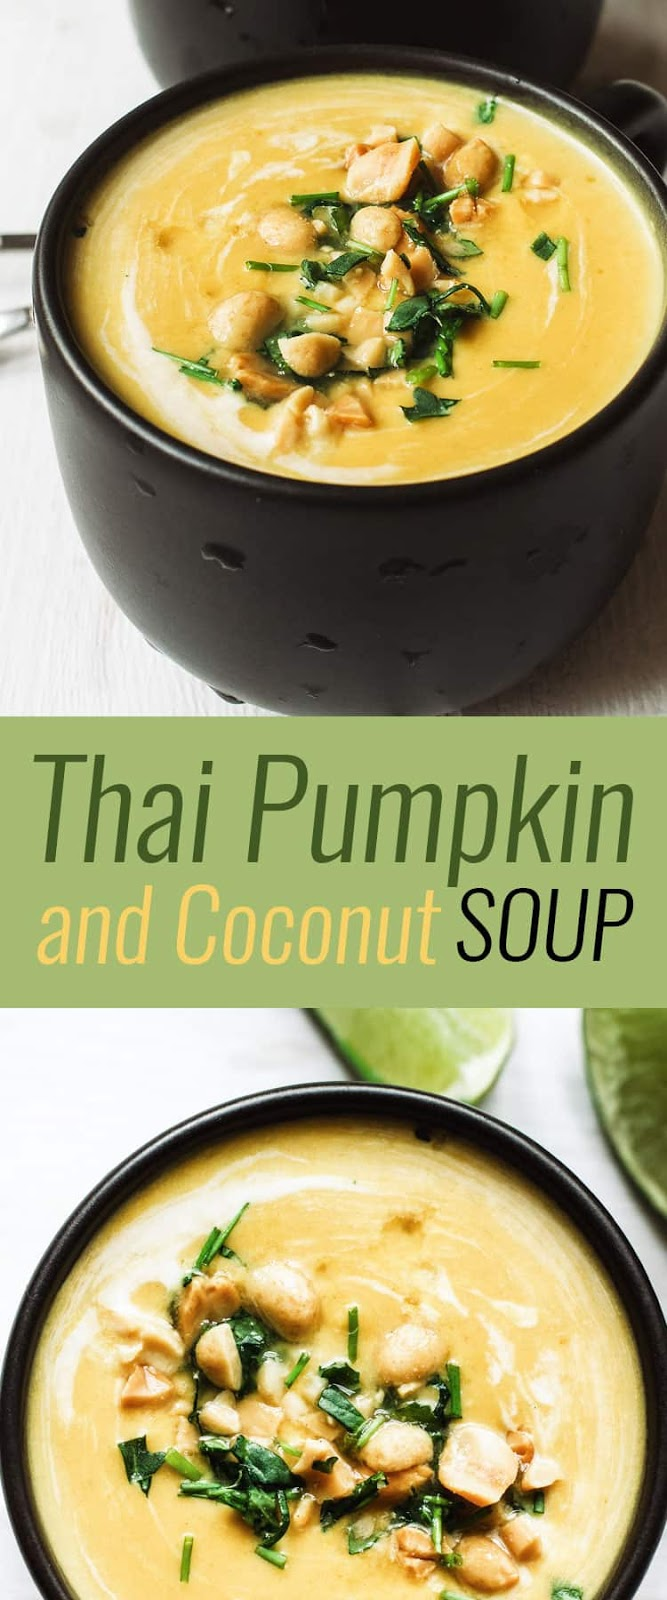 Thai Pumpkin and Coconut Soup